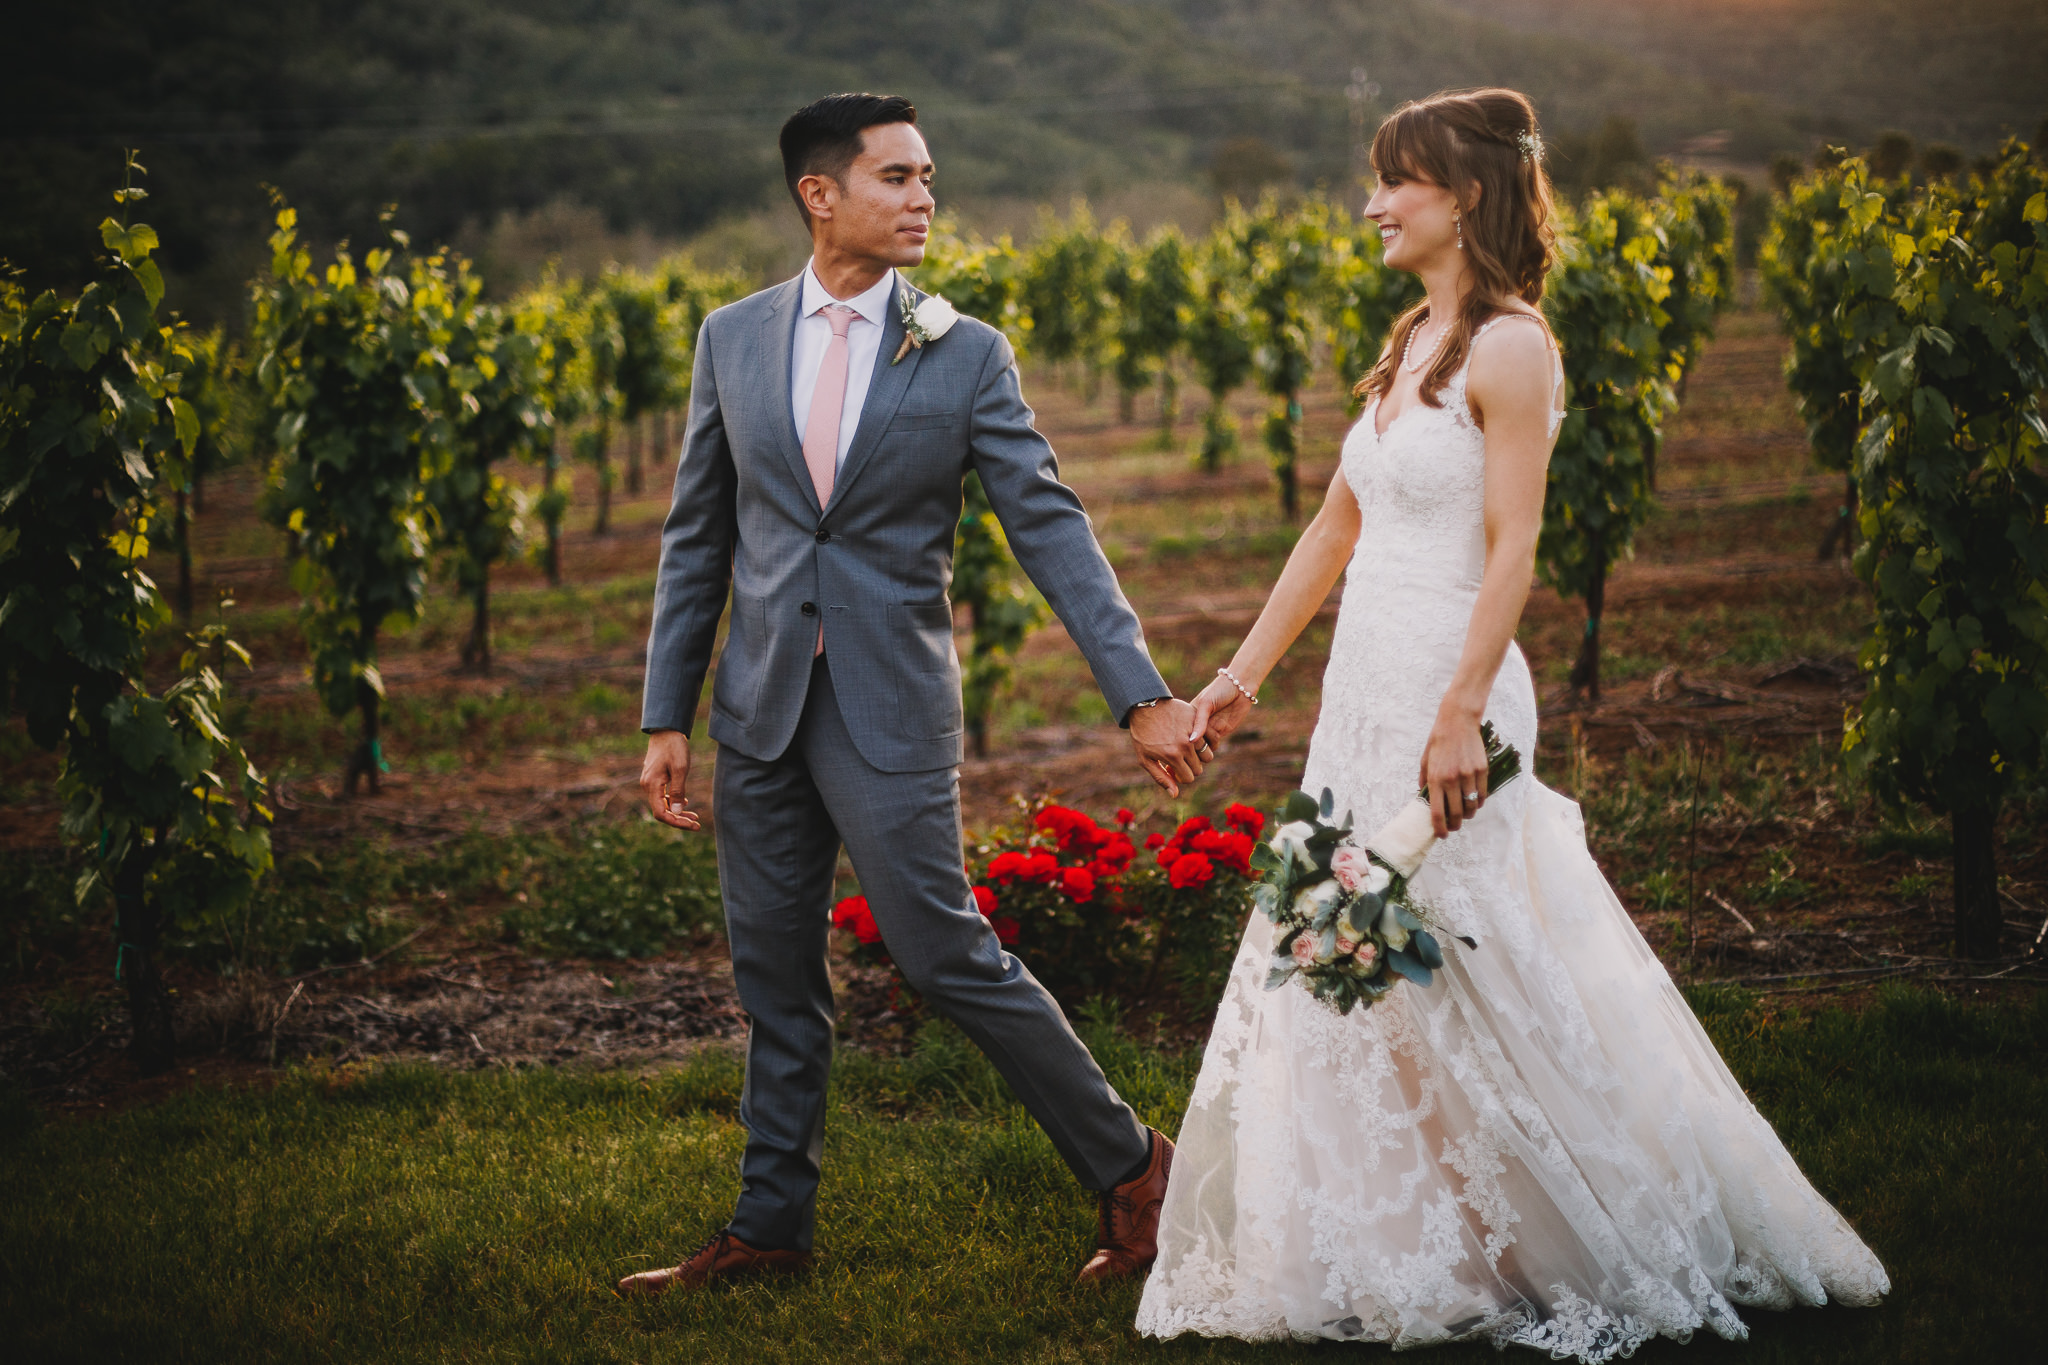 Archer Inspired Photography Kirigin Cellars Gilroy California SoCal Orange County Los Angeles Long Beach Lifestyle Wedding Elopement Engagement Photographer-454.jpg